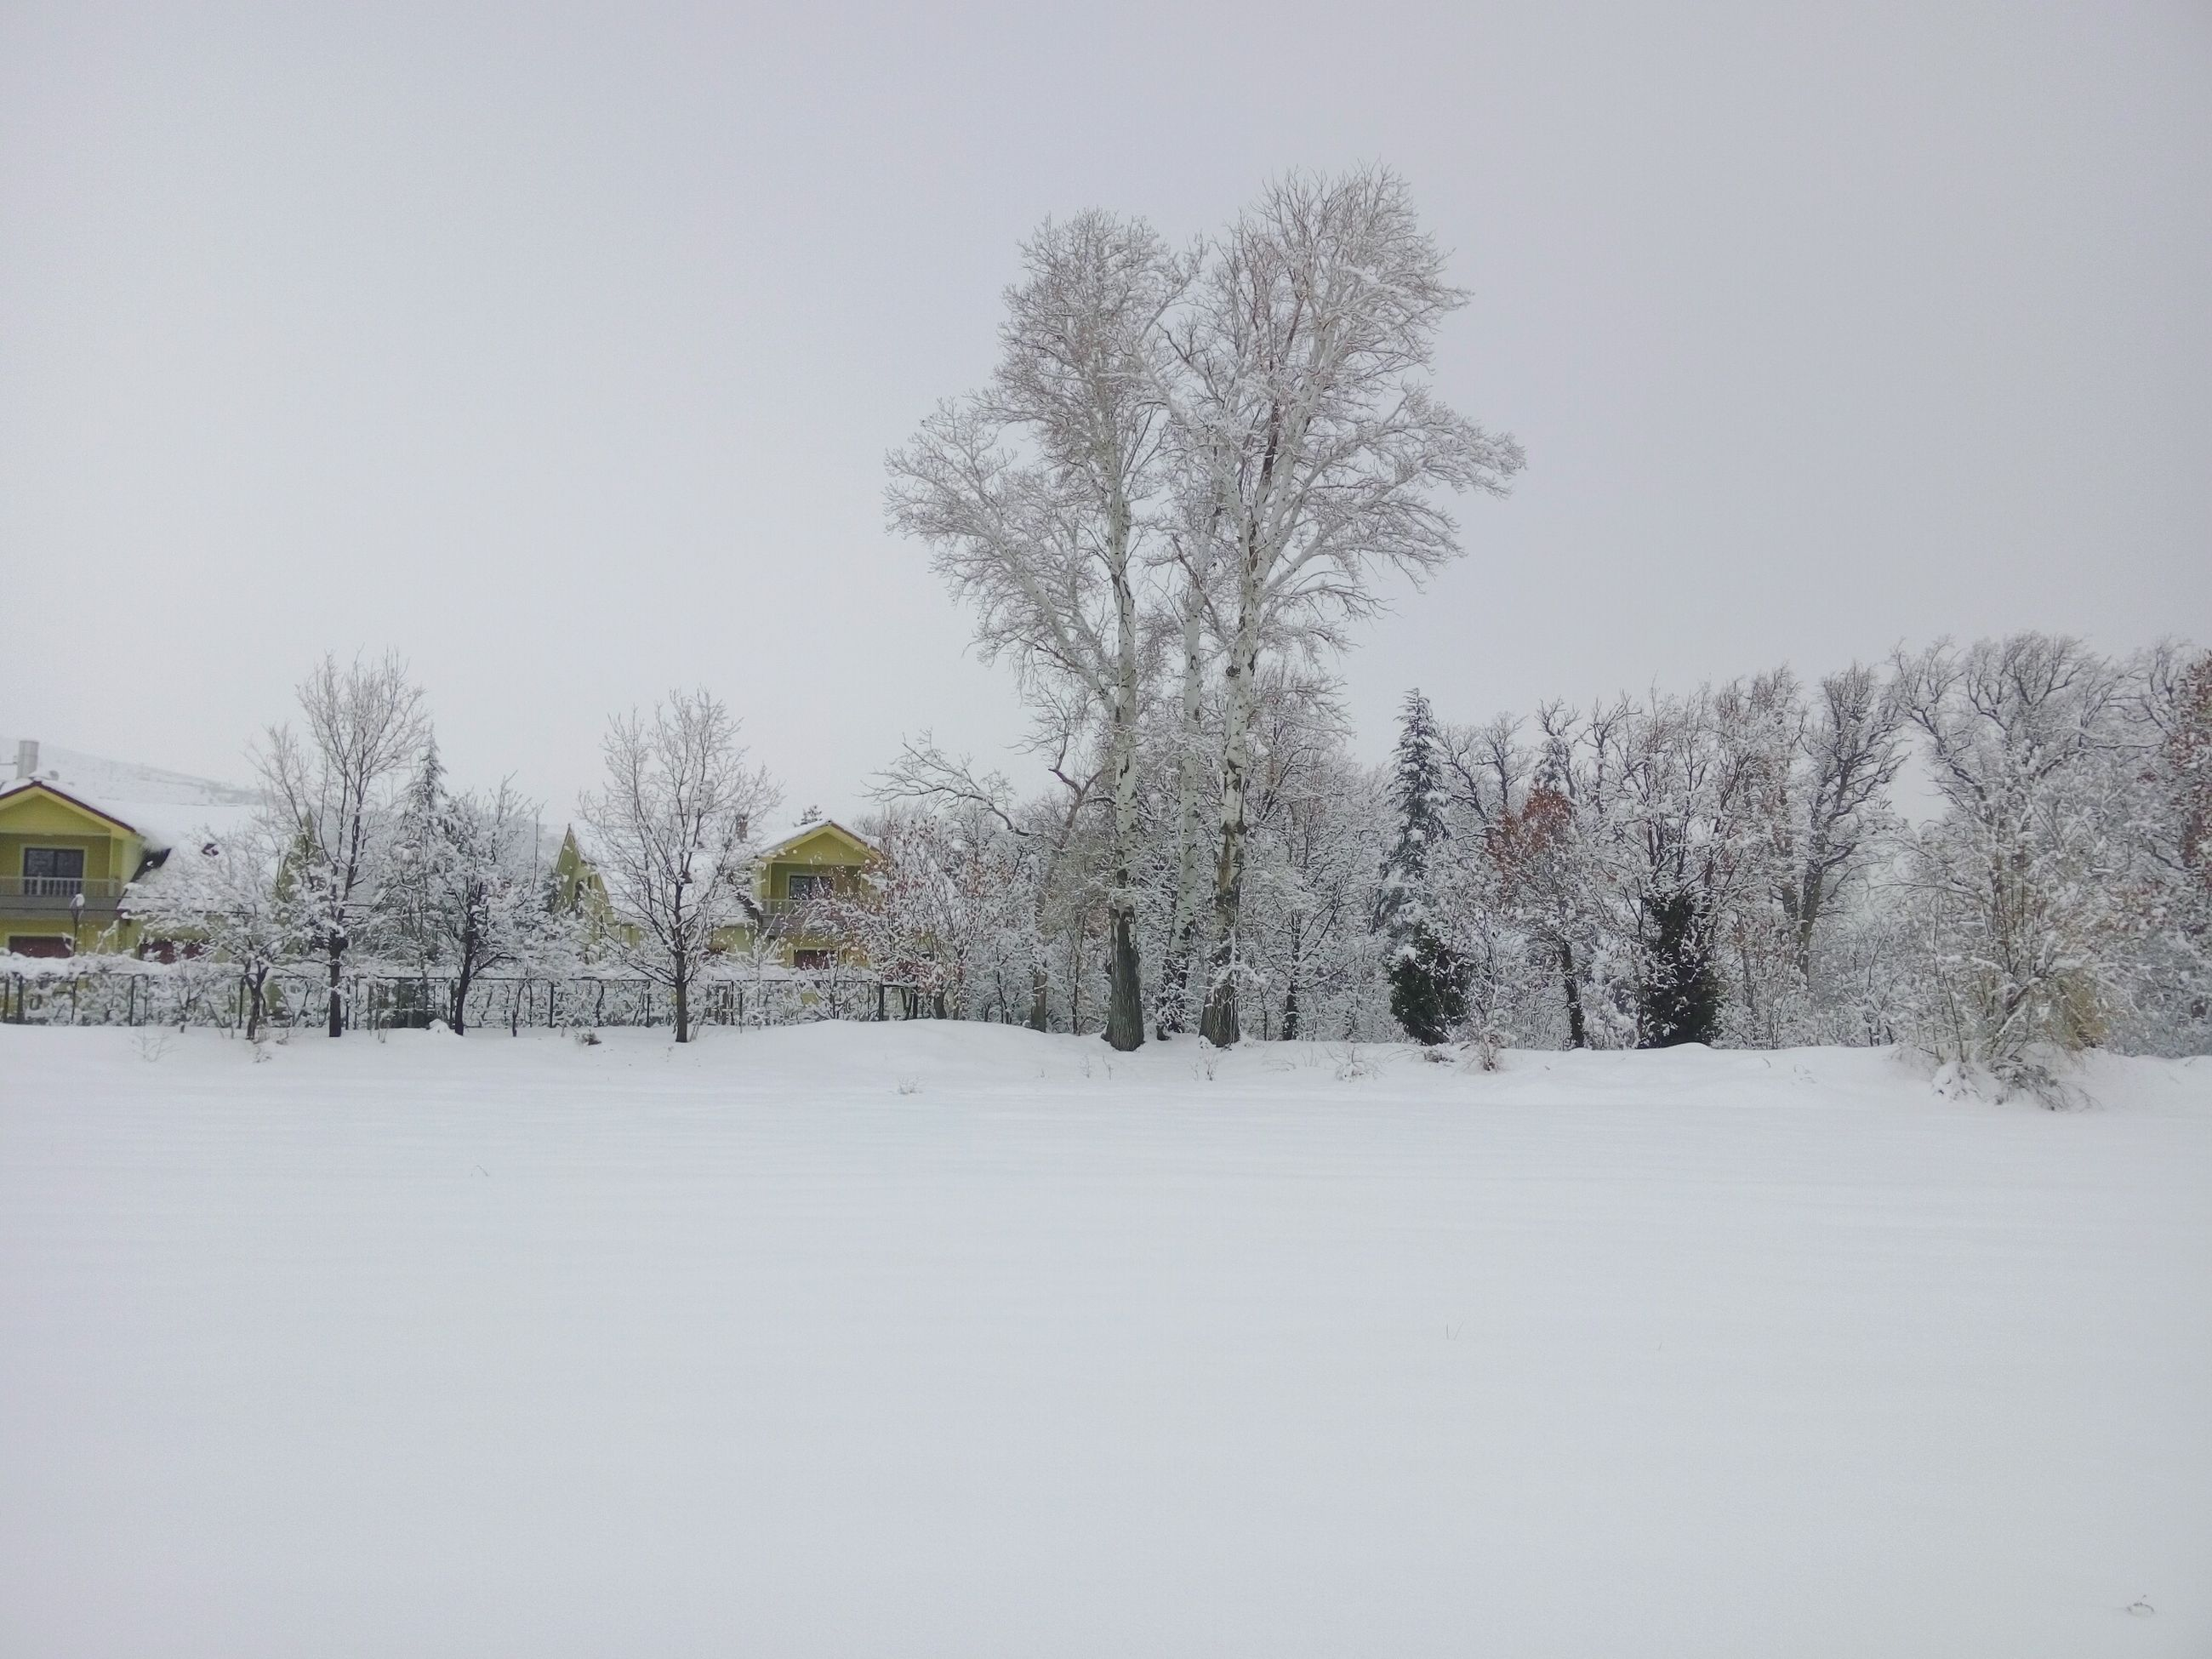 tree, winter, snow, cold temperature, nature, no people, tranquility, growth, outdoors, day, beauty in nature, tranquil scene, clear sky, sky, scenics, landscape, snowing